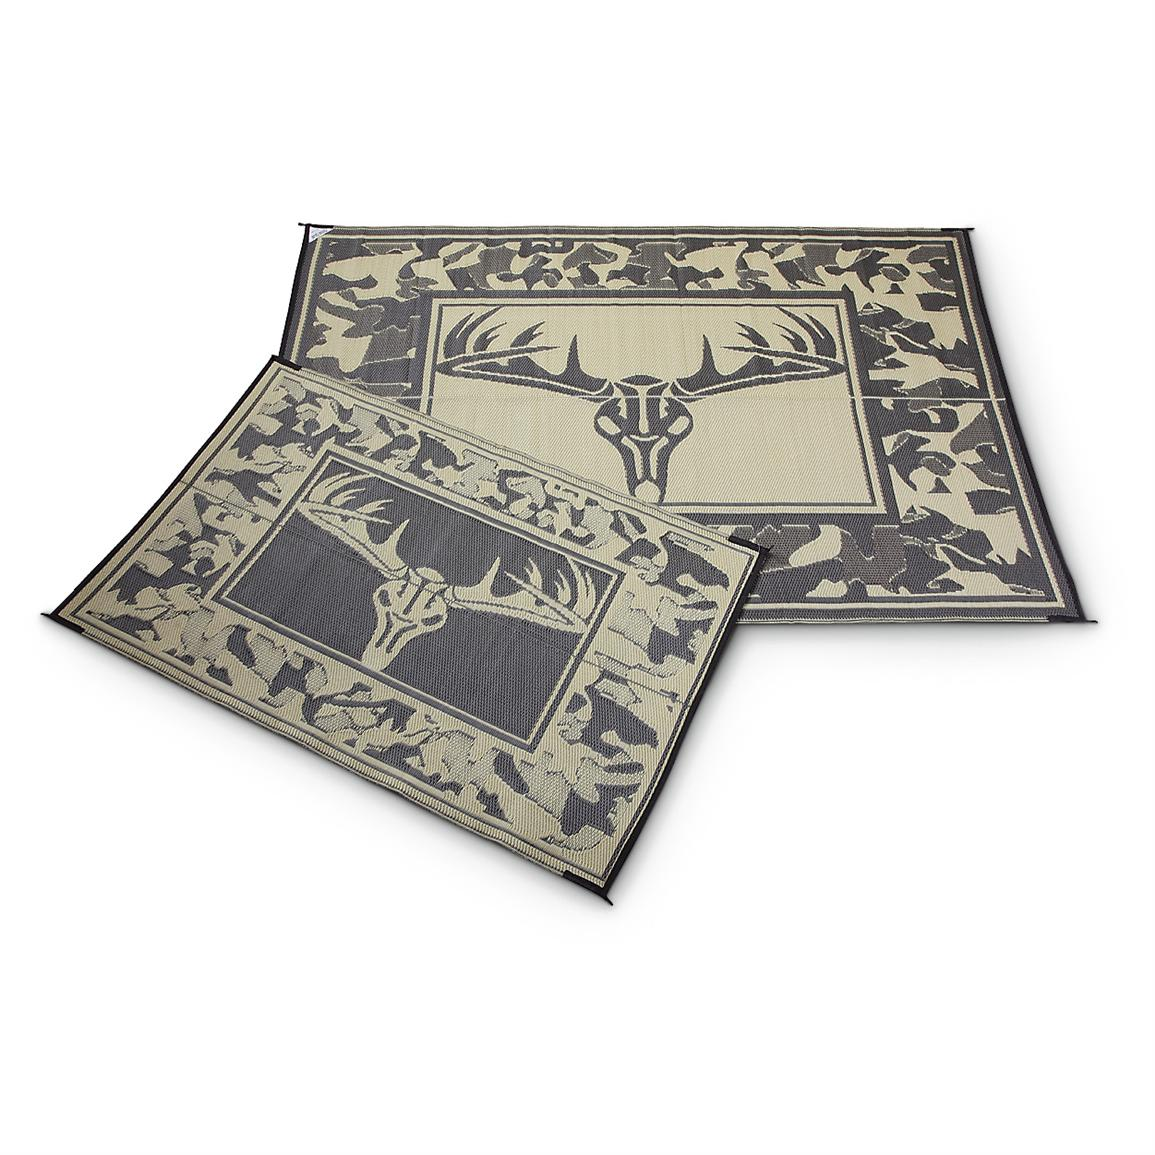 Guide Gear Trophy Outdoor Mat, 4 foot x 6 foot, Camo